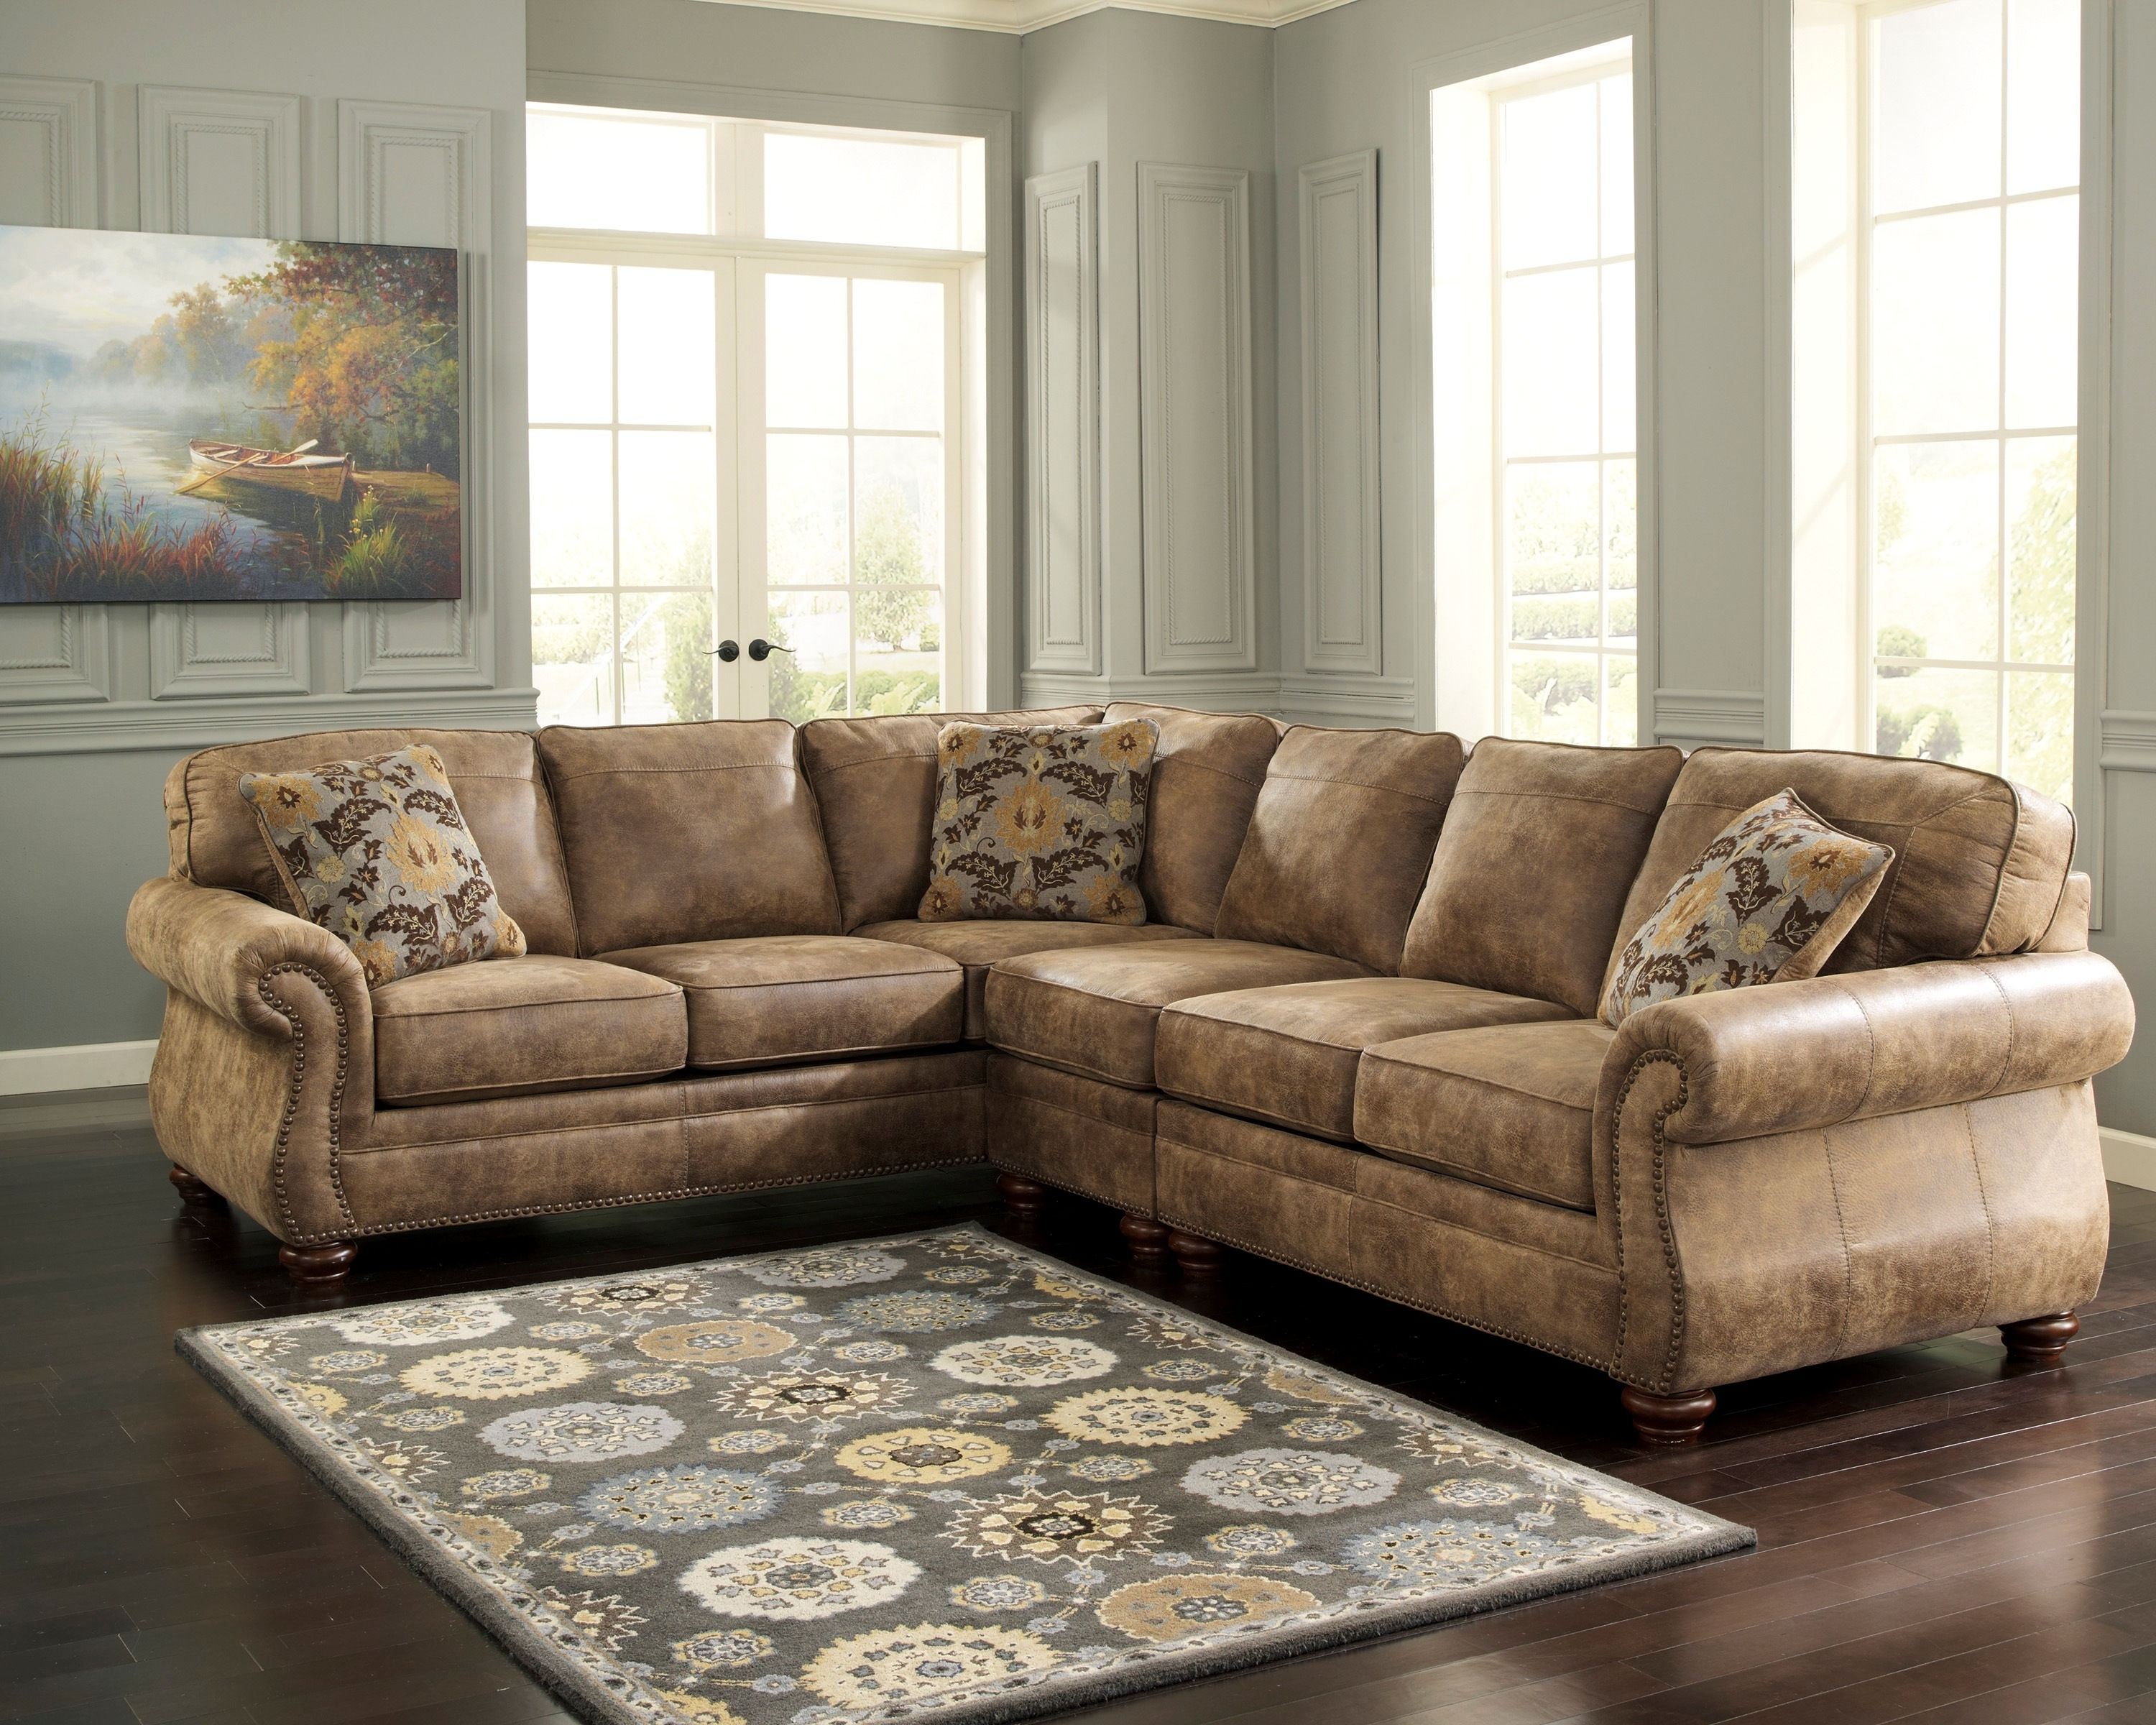 Laf Sofa Raf Loveseat | Baci Living Room Intended For Turdur 2 Piece Sectionals With Laf Loveseat (Image 12 of 25)